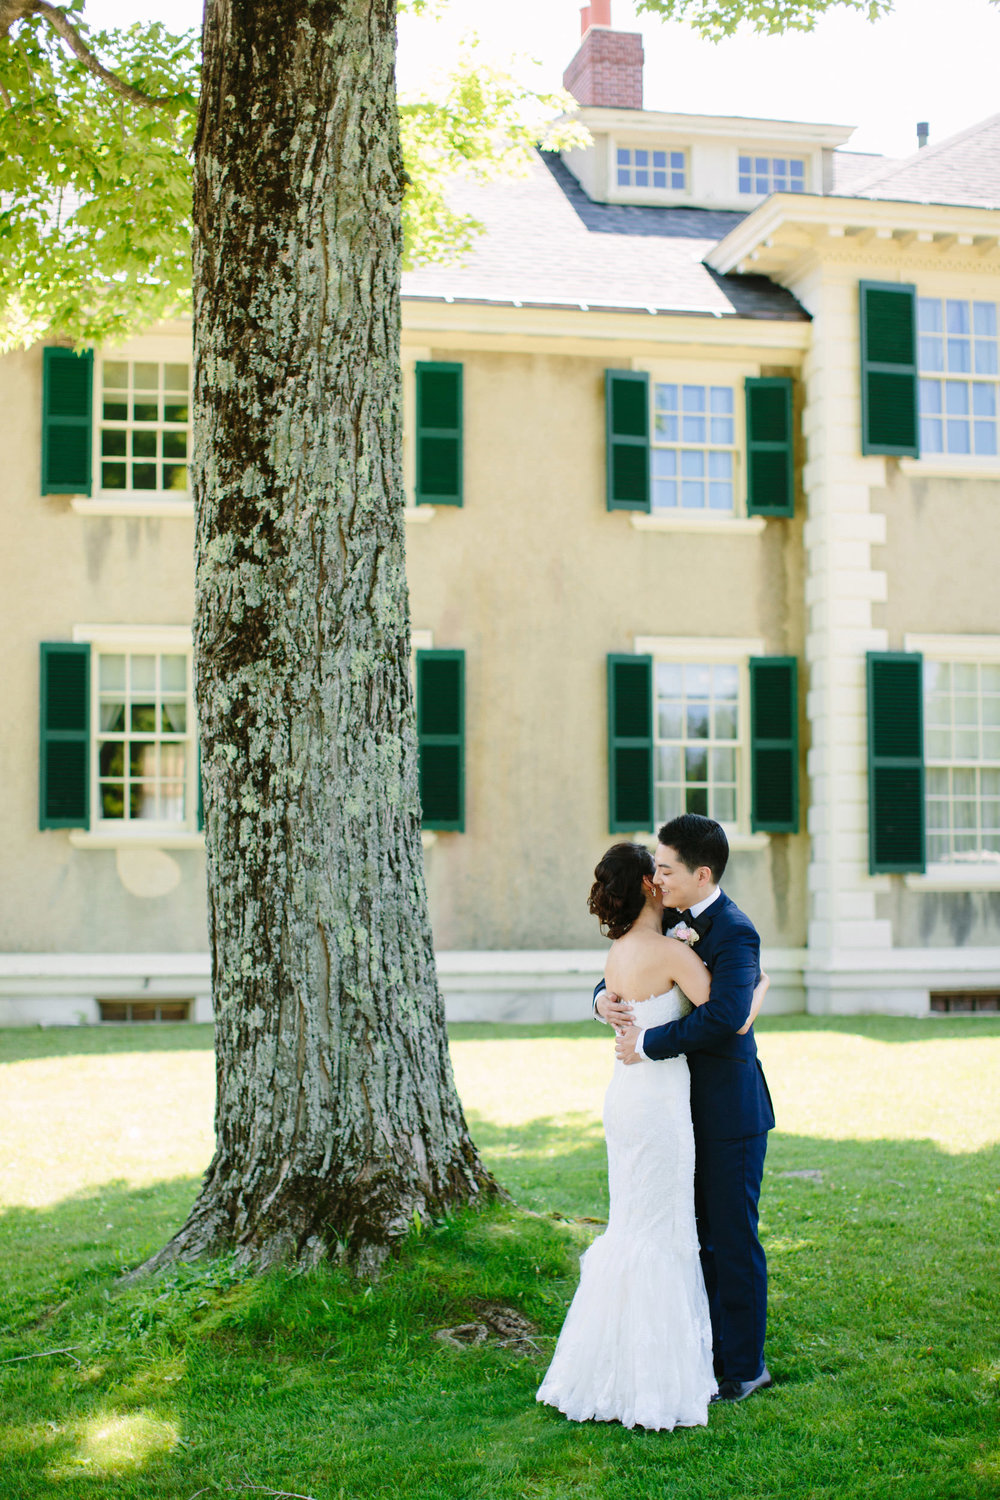 hildene_wedding_26.jpg